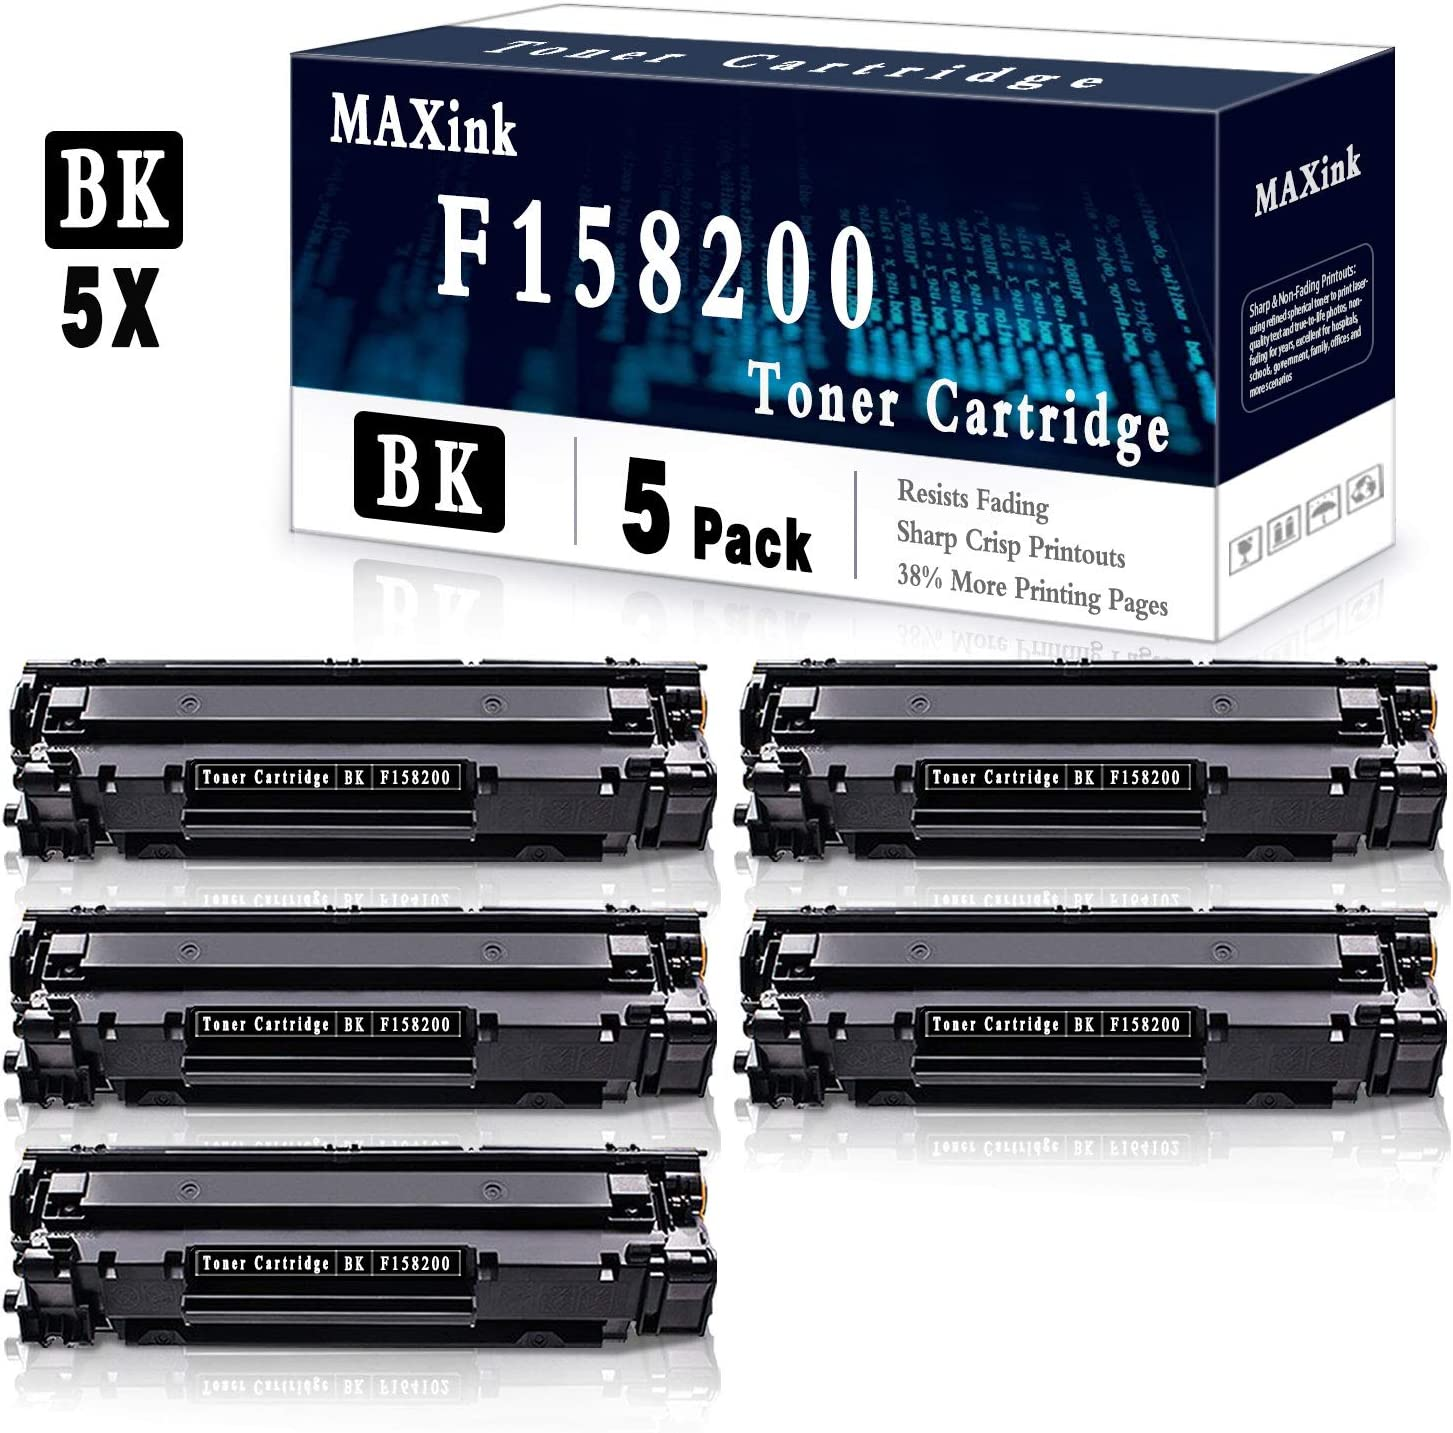 5 Pack Black Toner Cartridge Compatible for Canon F158200 Printer Toner Cartridge,Sold by MAXink